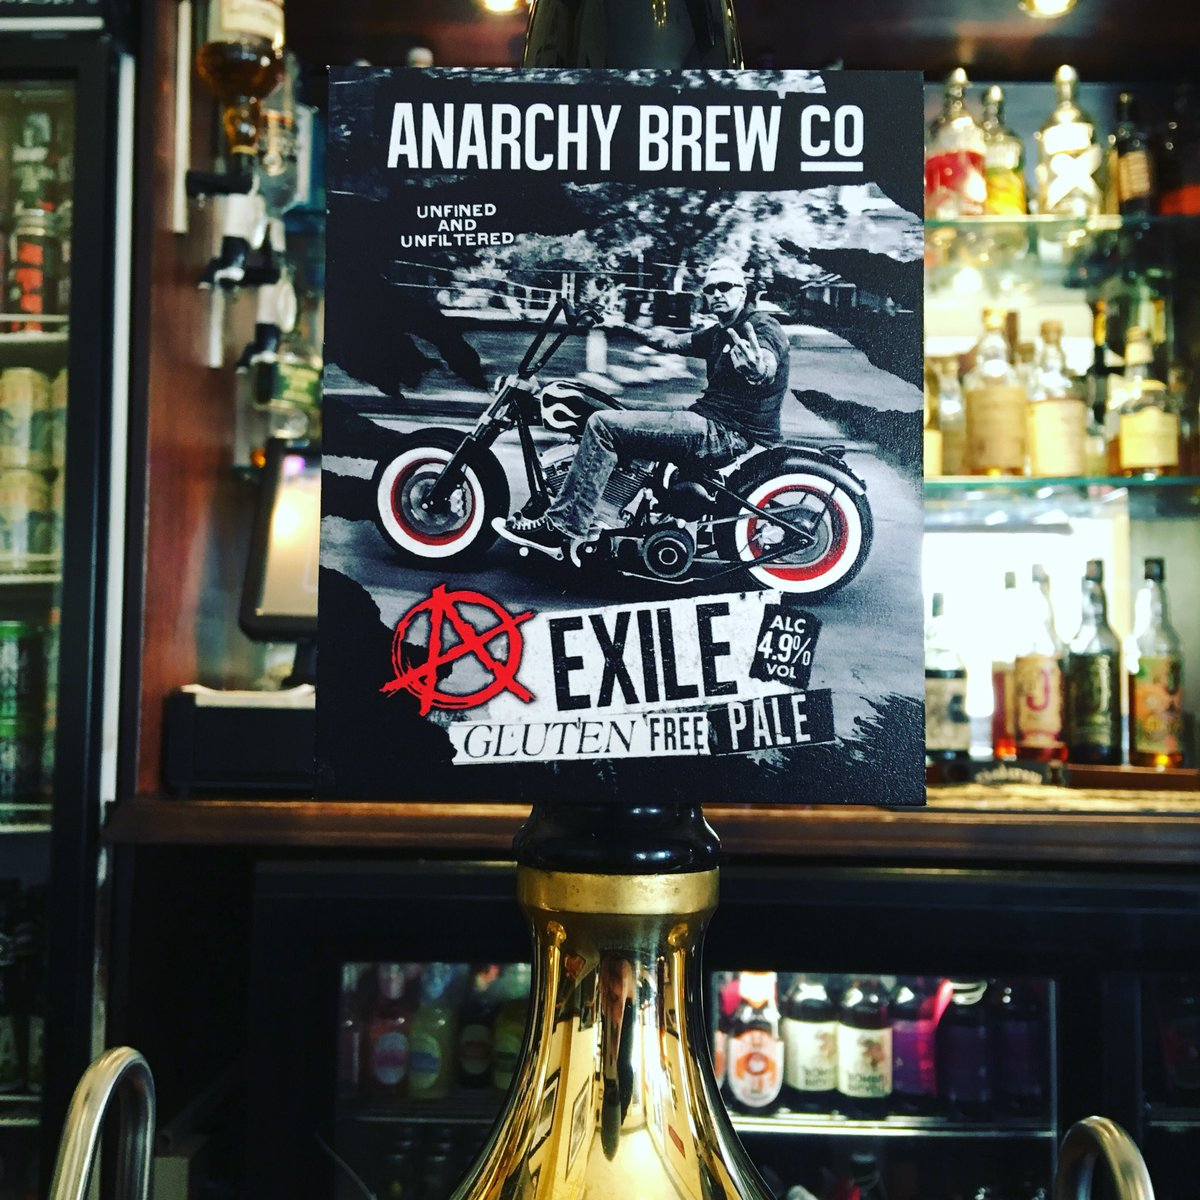 Exiled by choice! I'll take one more beer for the road! #headofsteamhuddersfield #cameronsbrewery #beerme #anarchybrewco #exile #glutenfree #veganbeer #unrefined #unfiltered #caskale